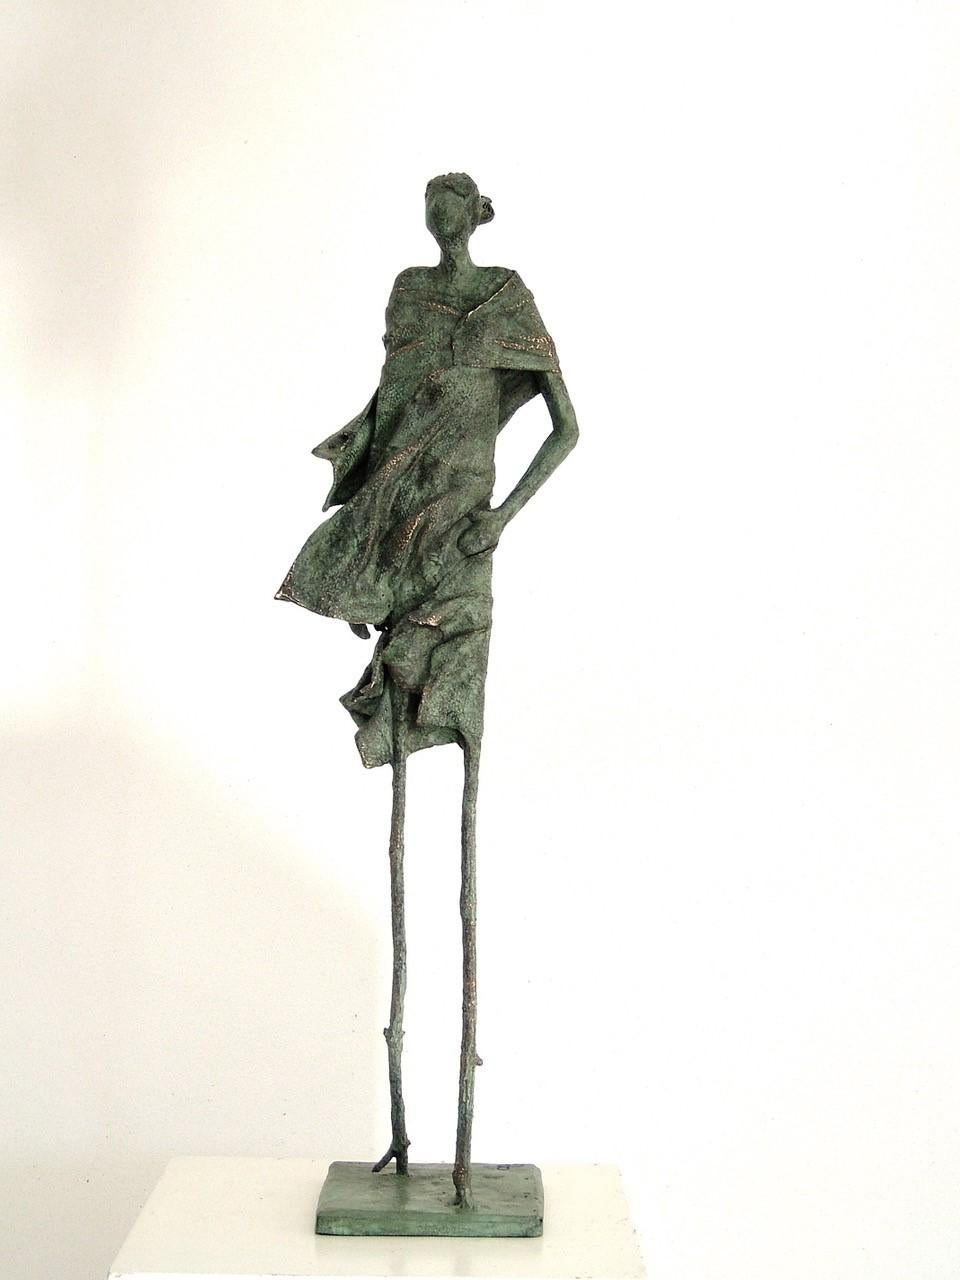 Walking in the Forest - Figurative Sculpture in Bronze: A Whimsical Character